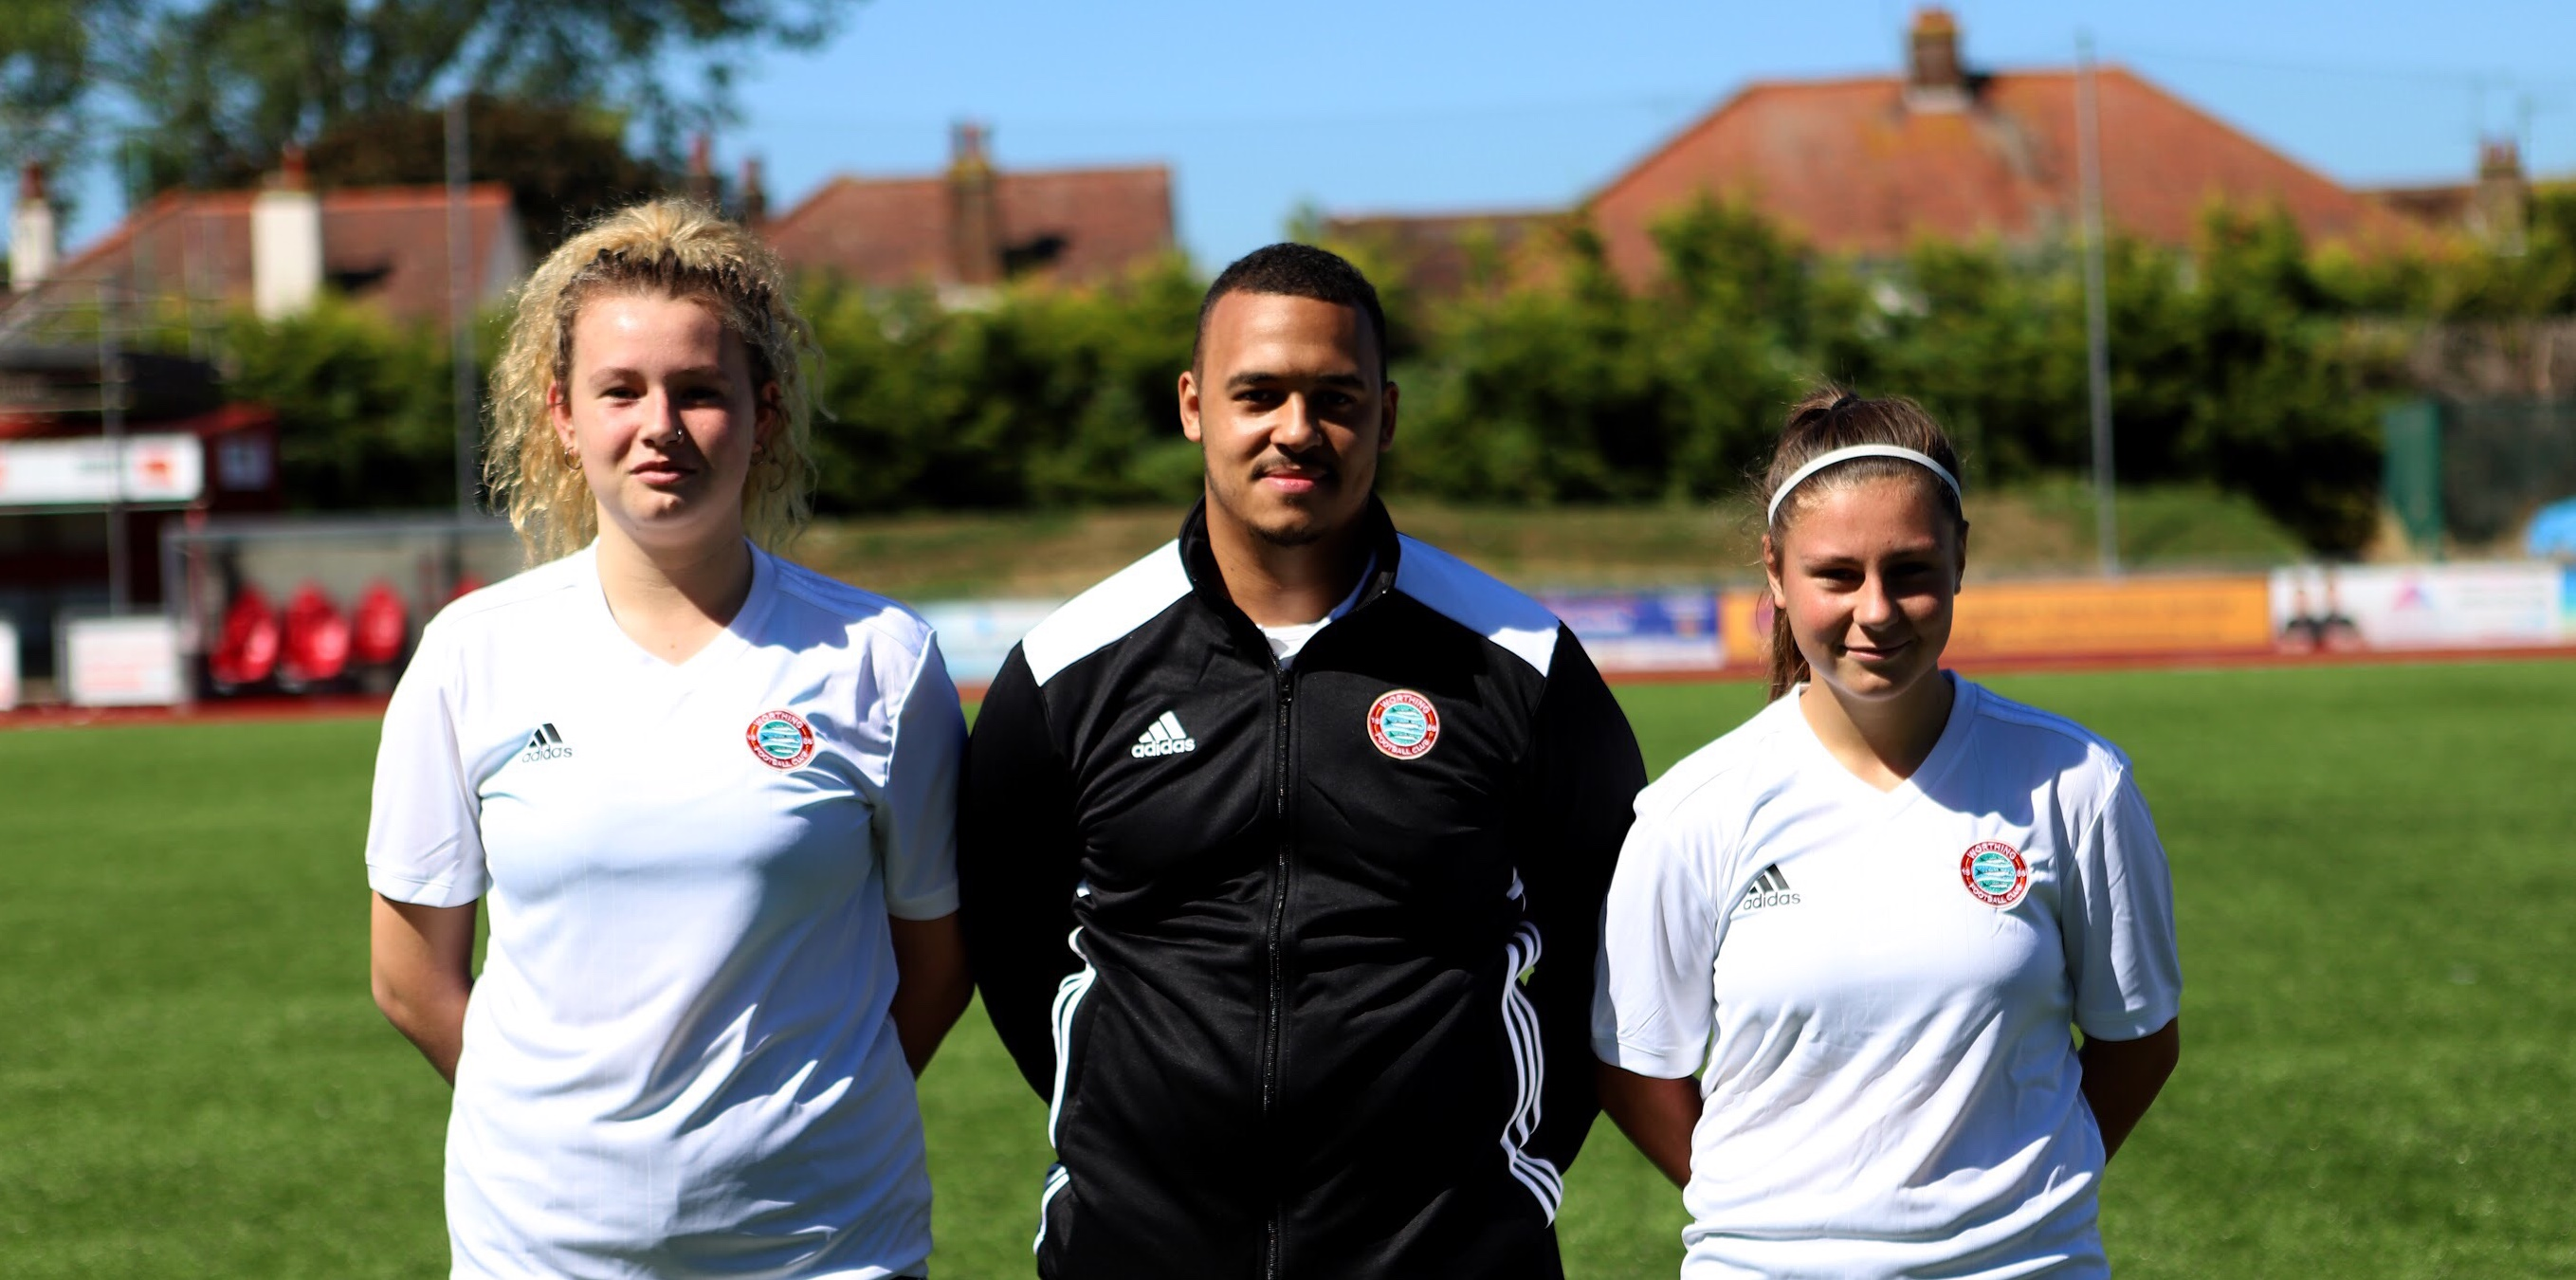 Read the full article - Young Worthing stars aiming high for the season ahead – and the future